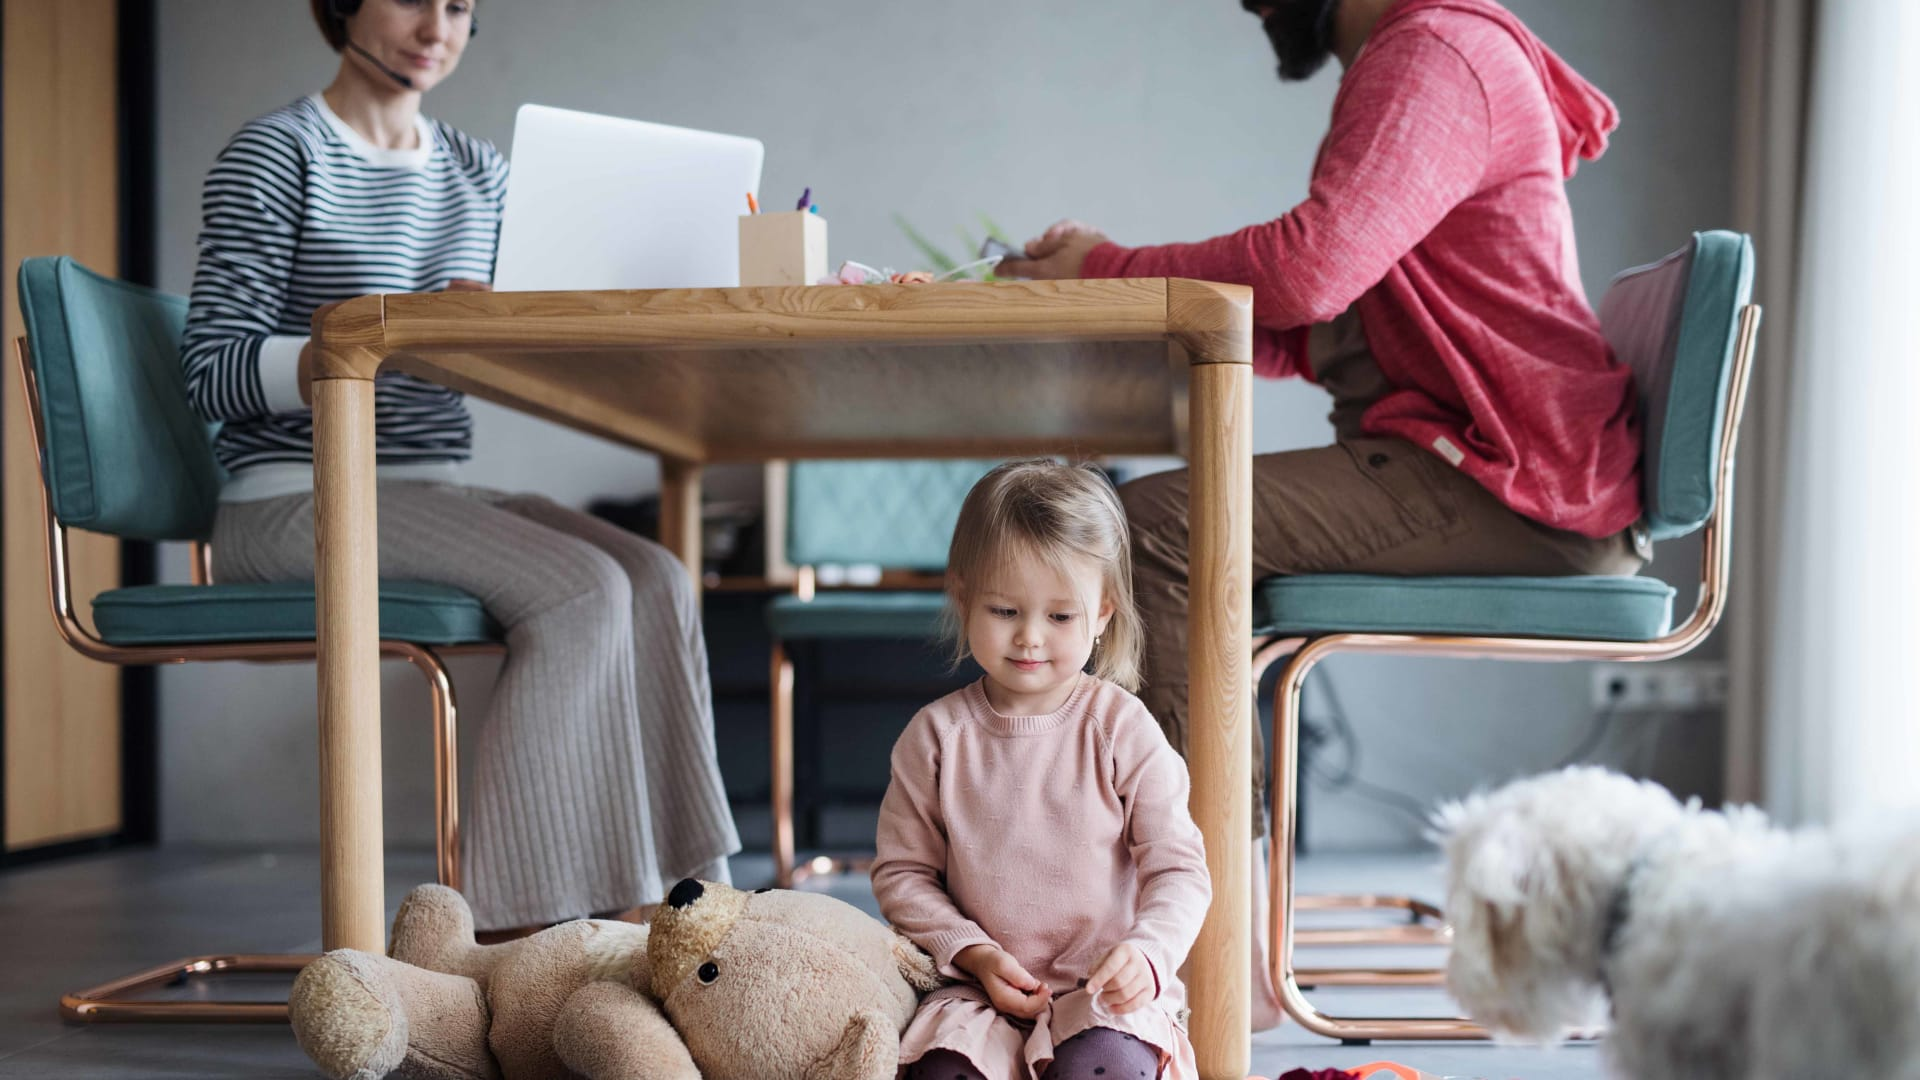 Why Your Employees With Children Might Be About to Quit, According to a New Survey